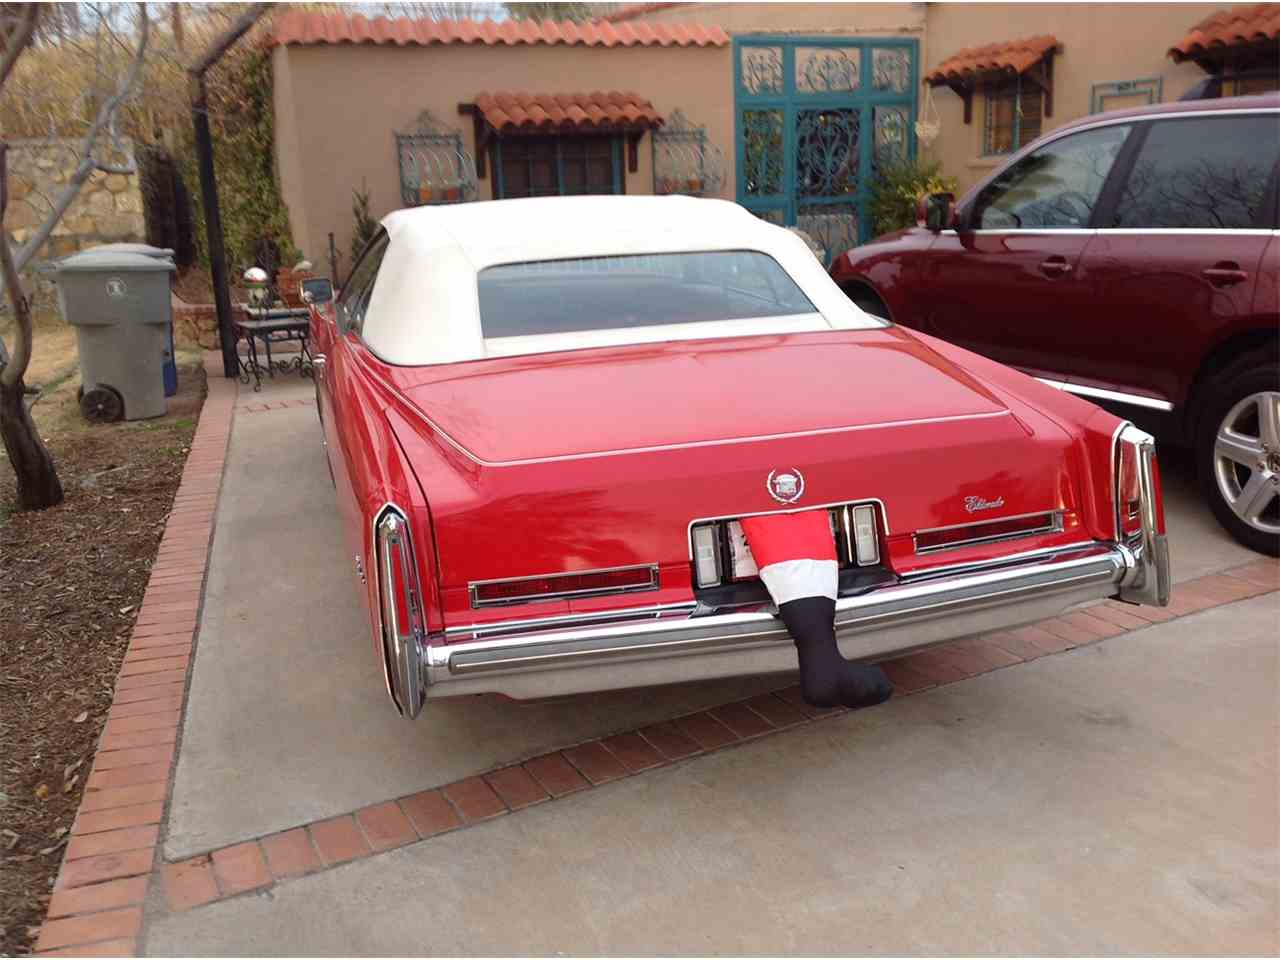 cadillac paso texas attachment about fleetwood editor show events lowrider el this